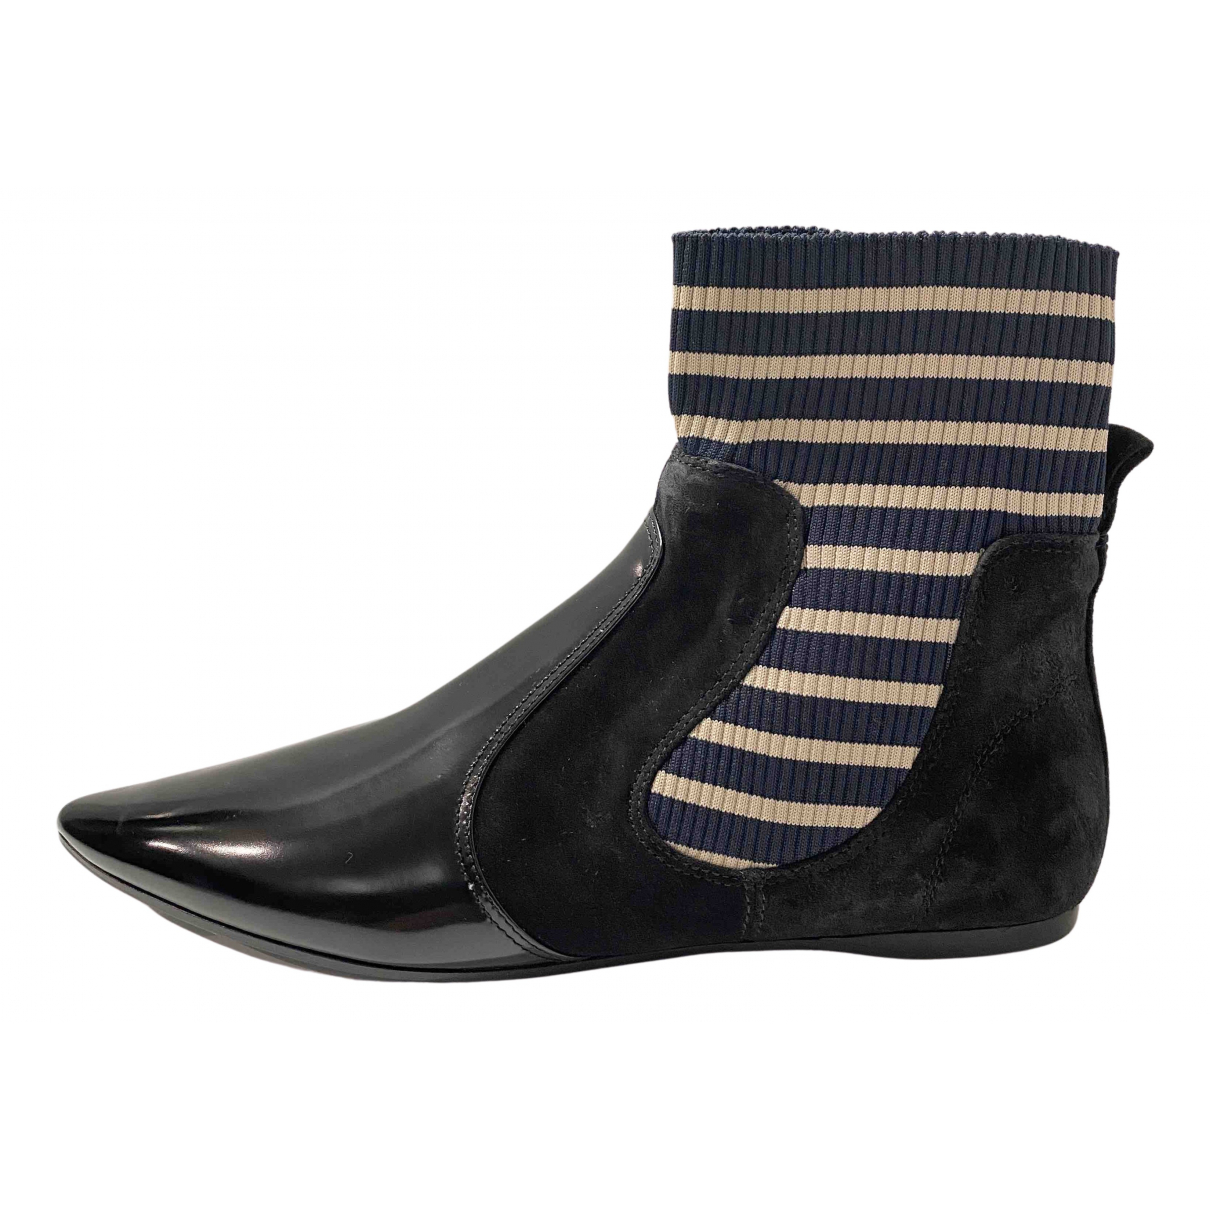 Acne Studios N Black Suede Ankle boots for Women 39 EU